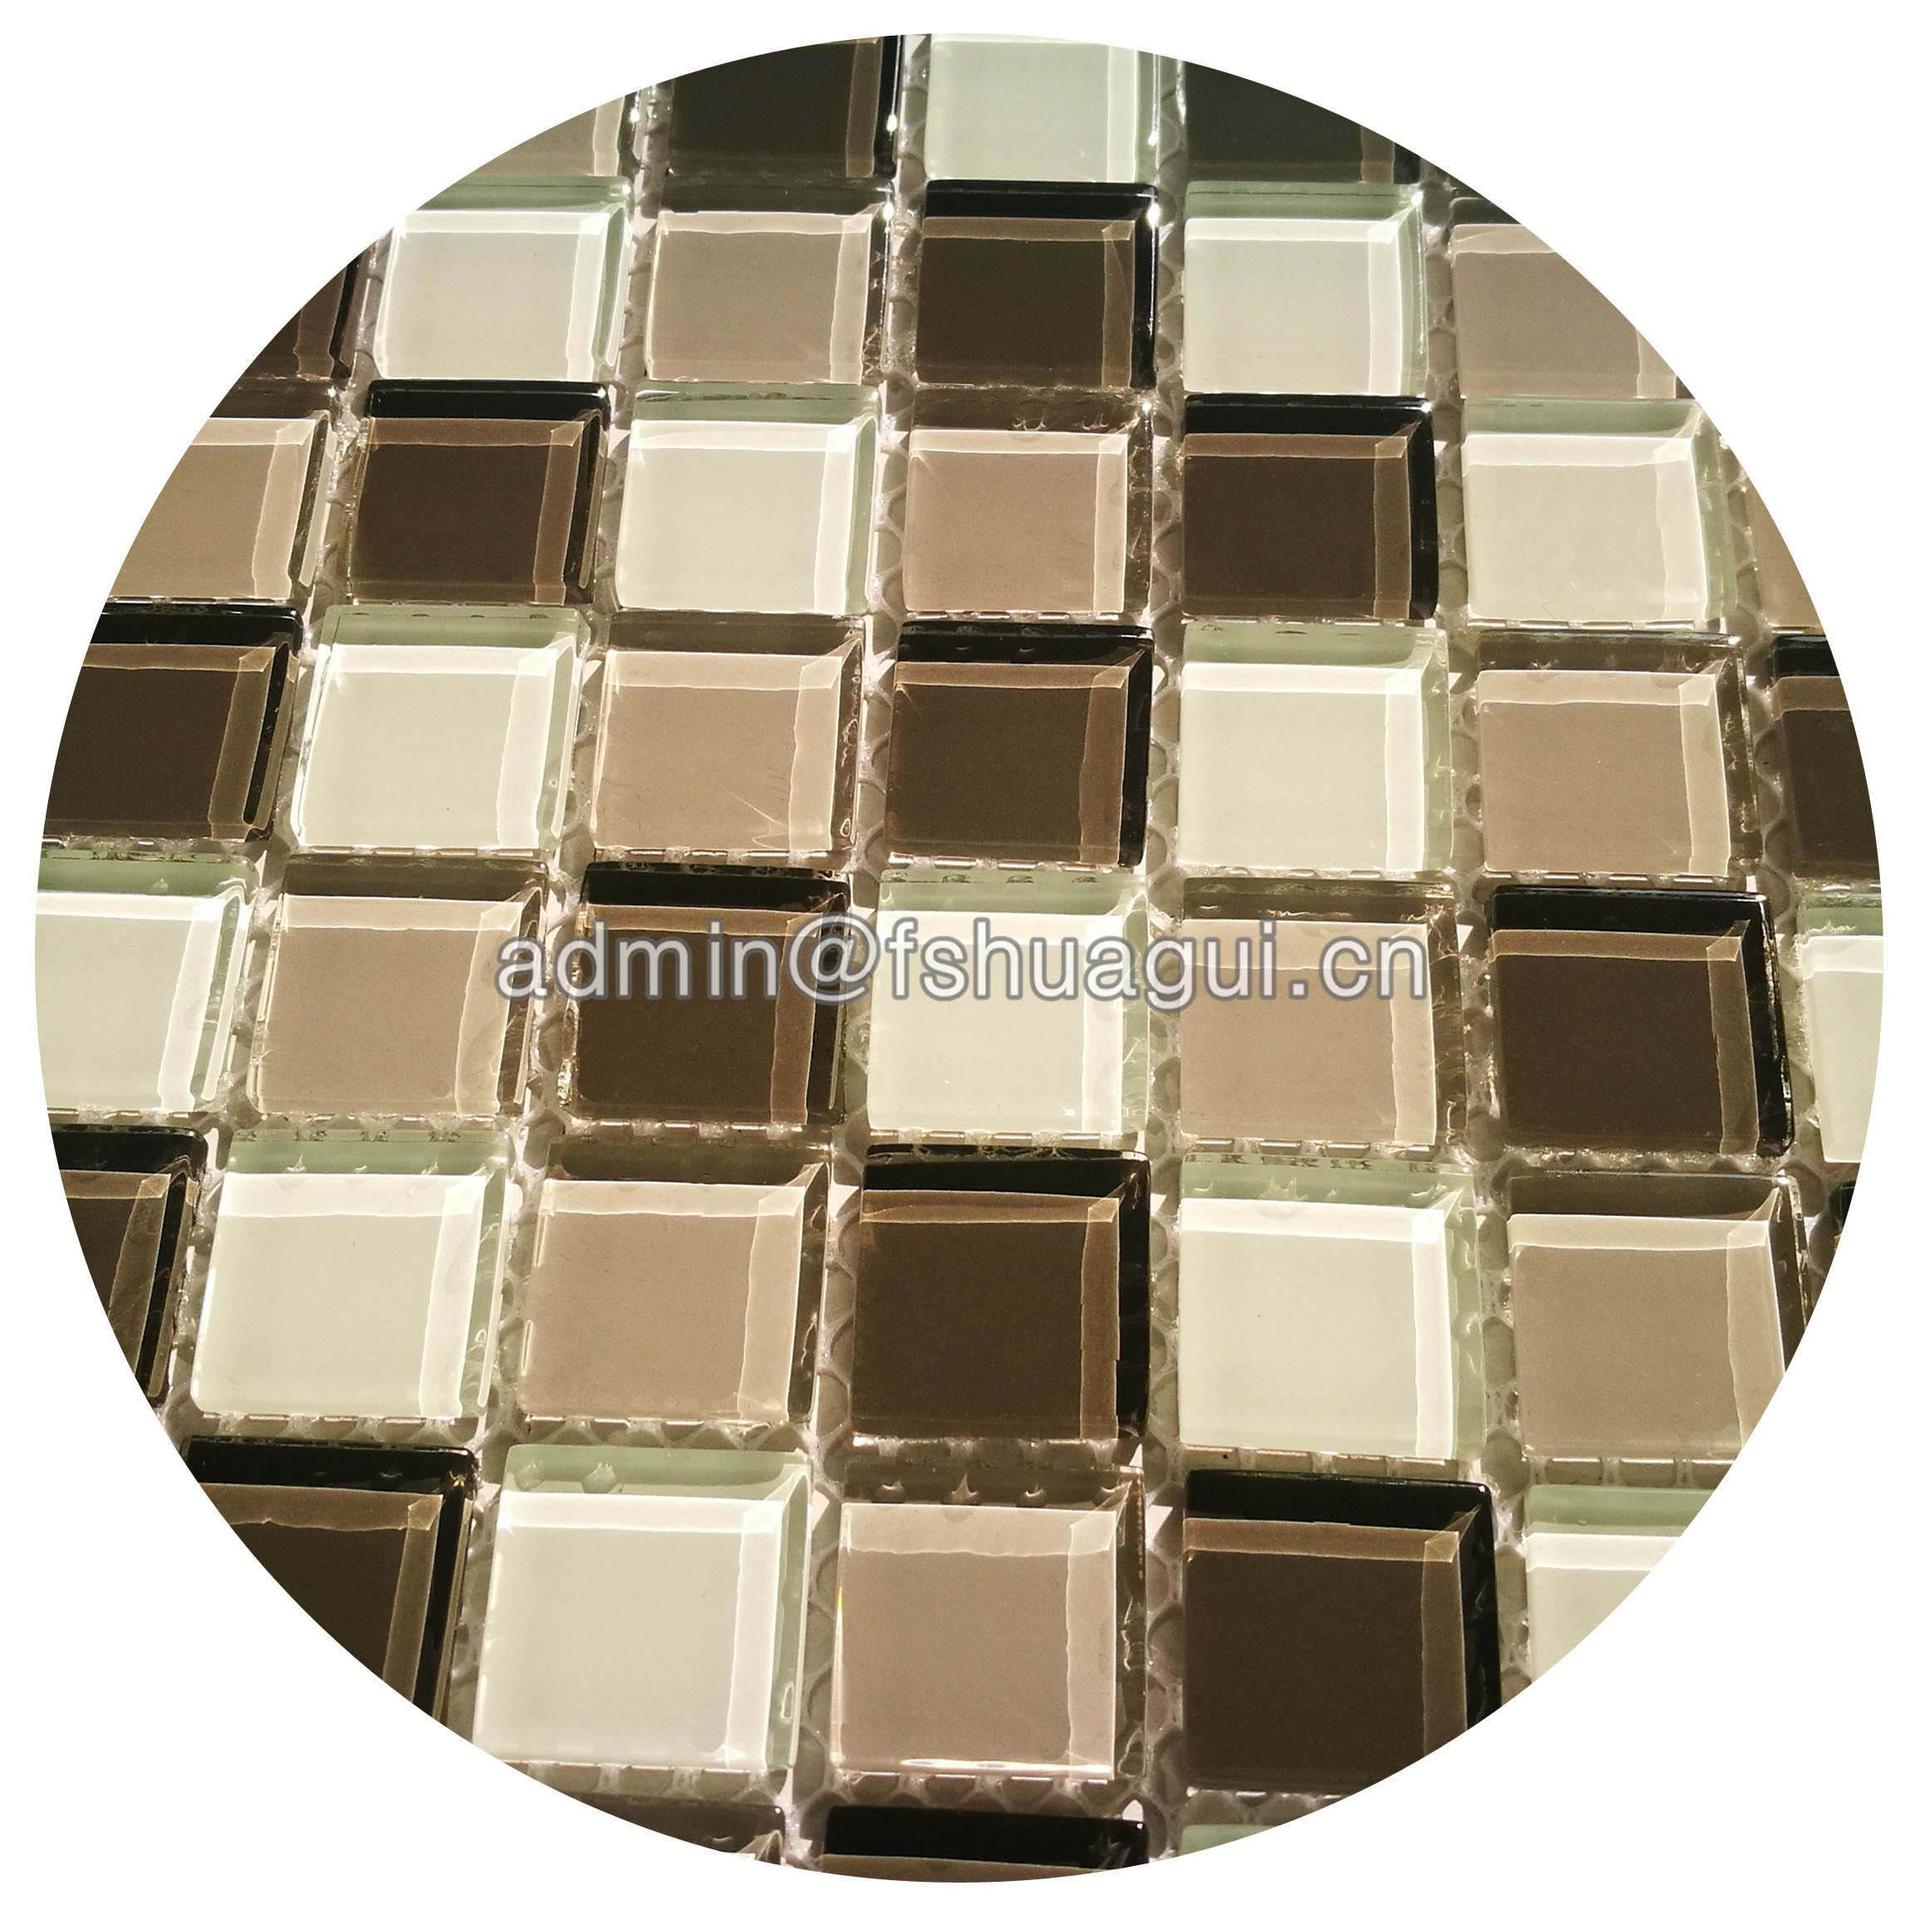 Interior decoration room grey crystal glass mosaic tile